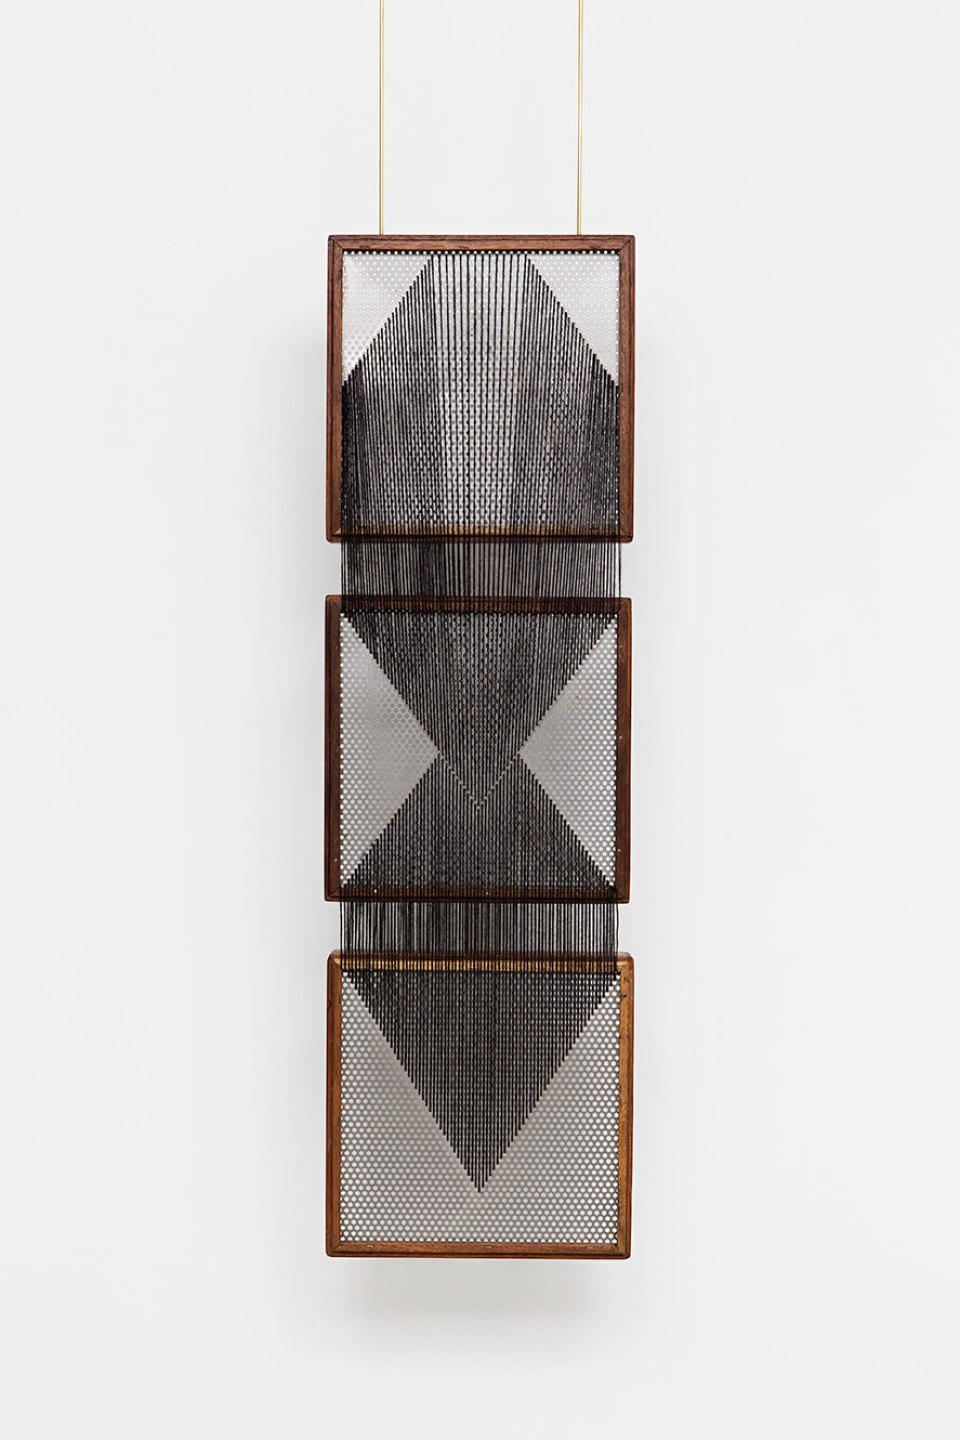 Paloma Bosquê, <em>On provisory interaction (geometry of relations #1)</em>, 2015, coffee sieve, wool and brass rods, 100,7 × 30 cm - Mendes Wood DM